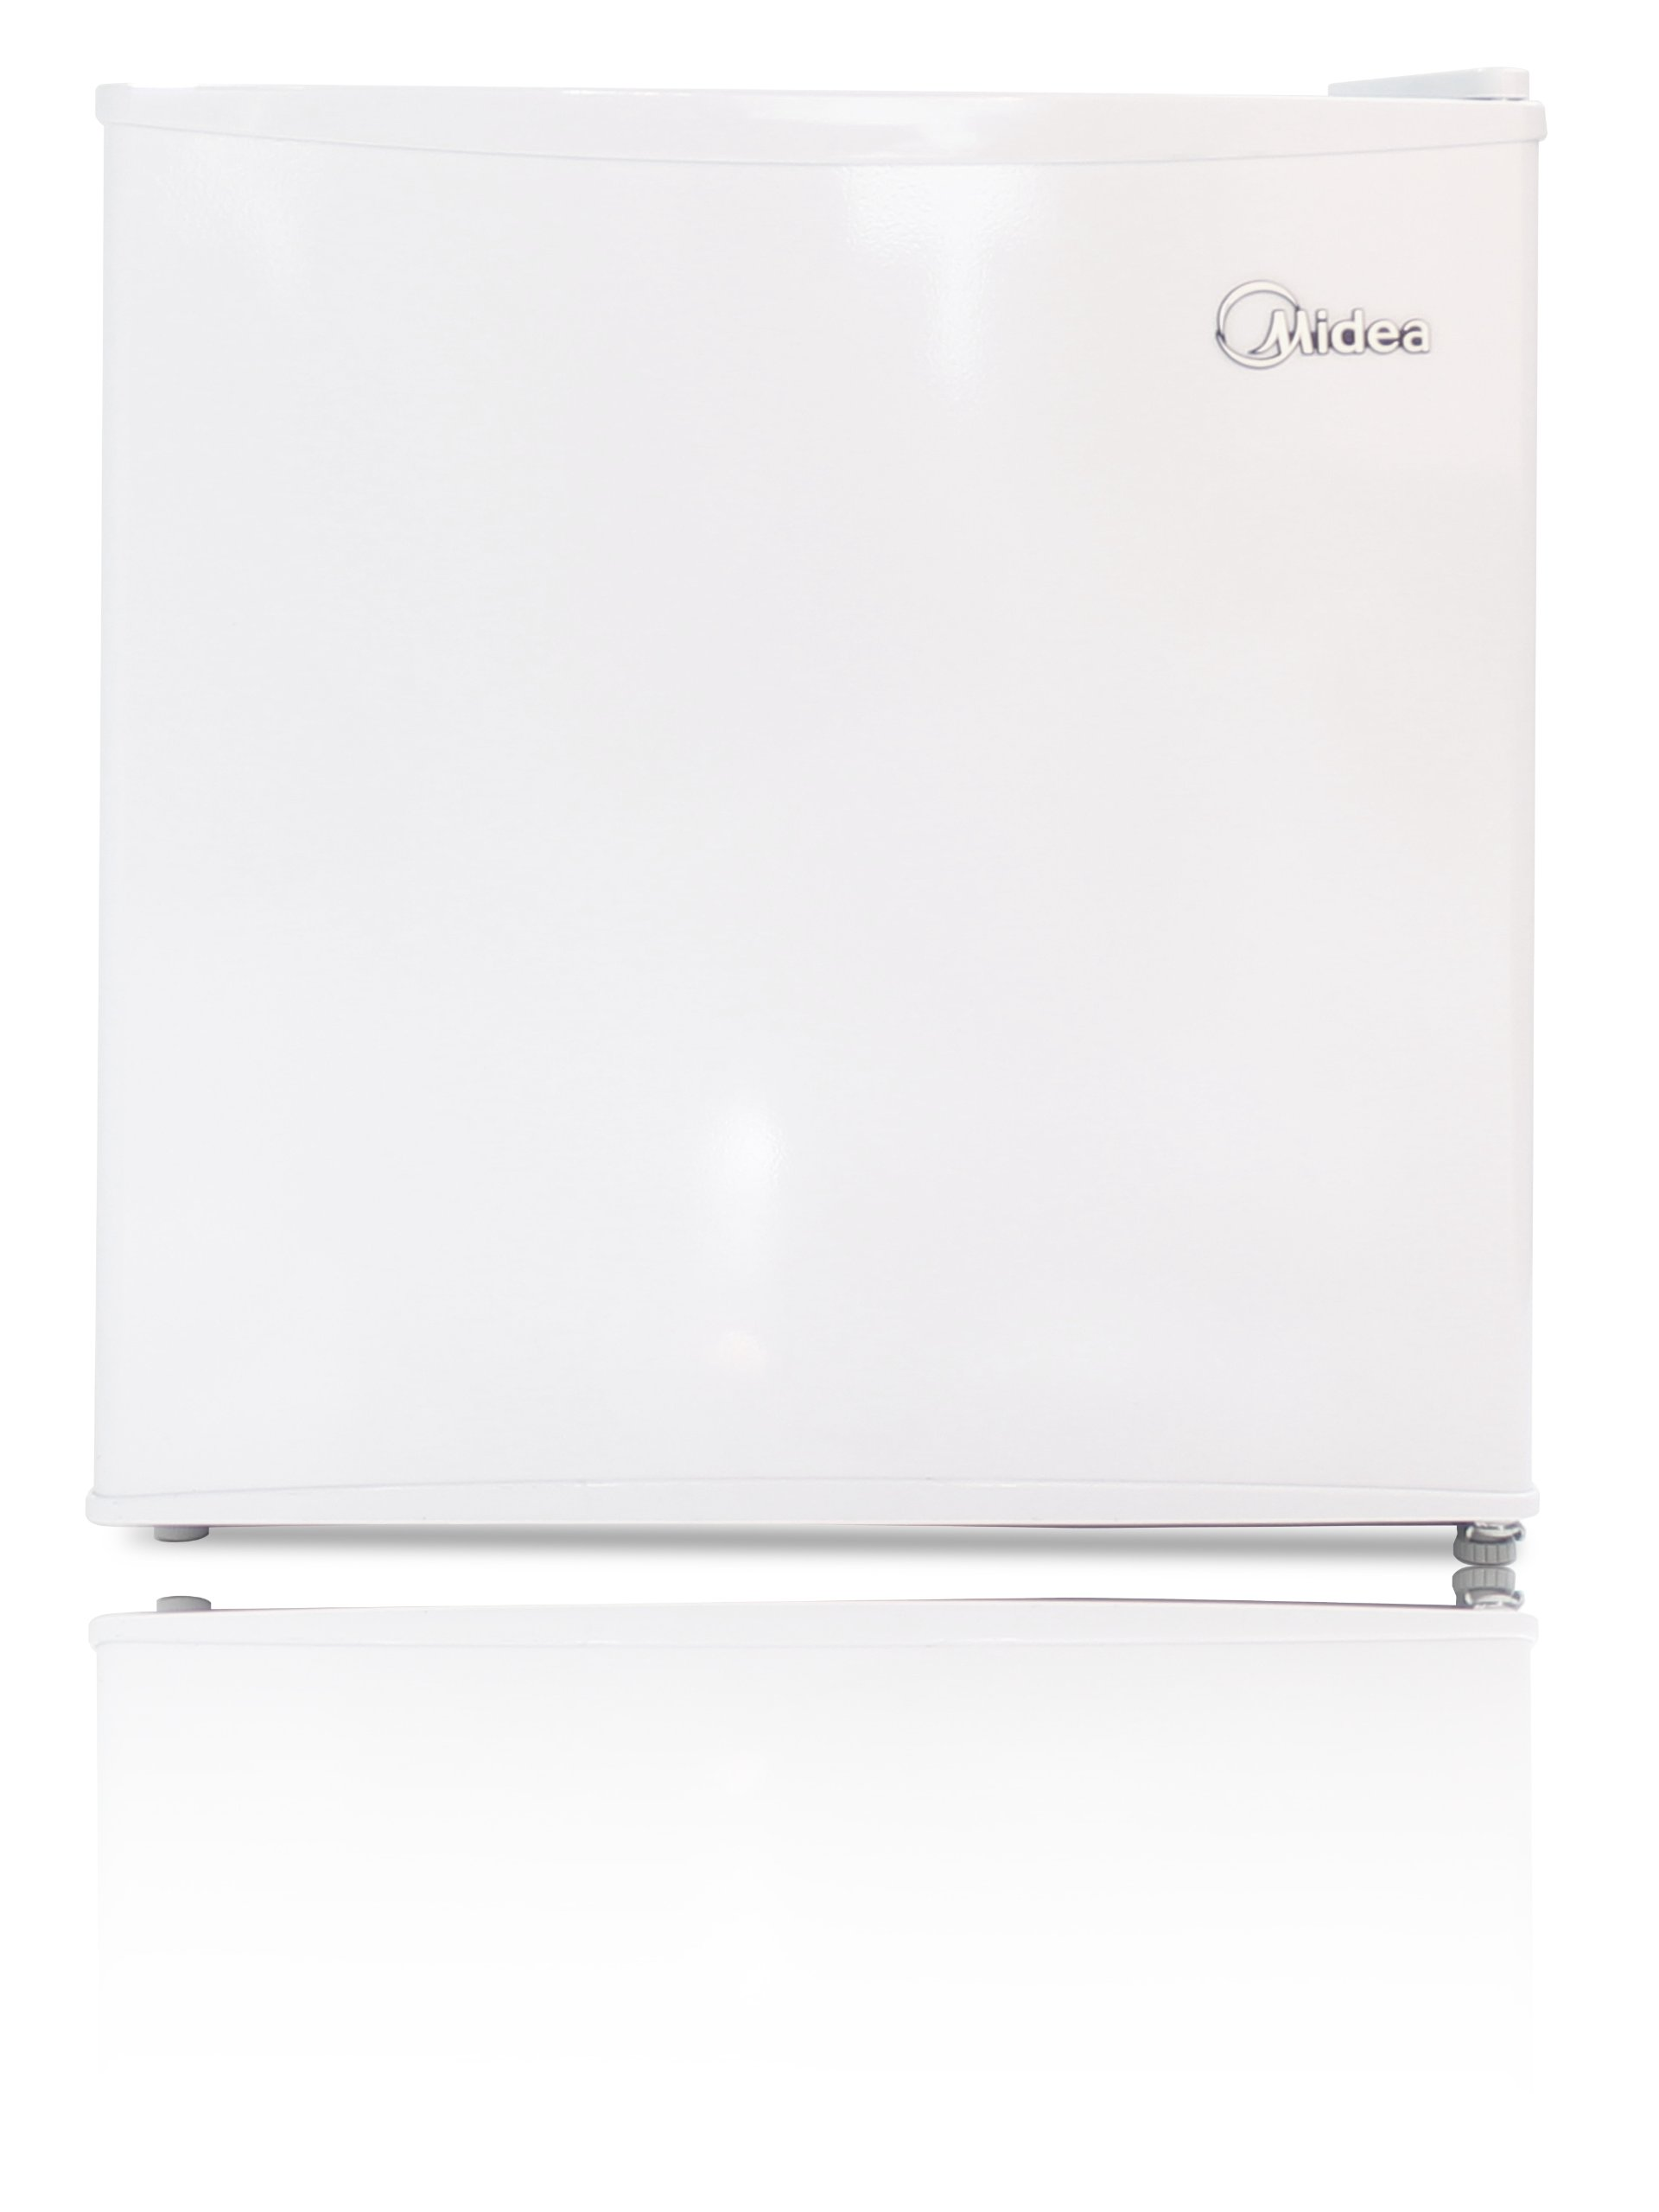 Midea WHS-52FW1 Compact Single Reversible Door Upright Freezer, 1.1 Cubic Feet, White by MIDEA